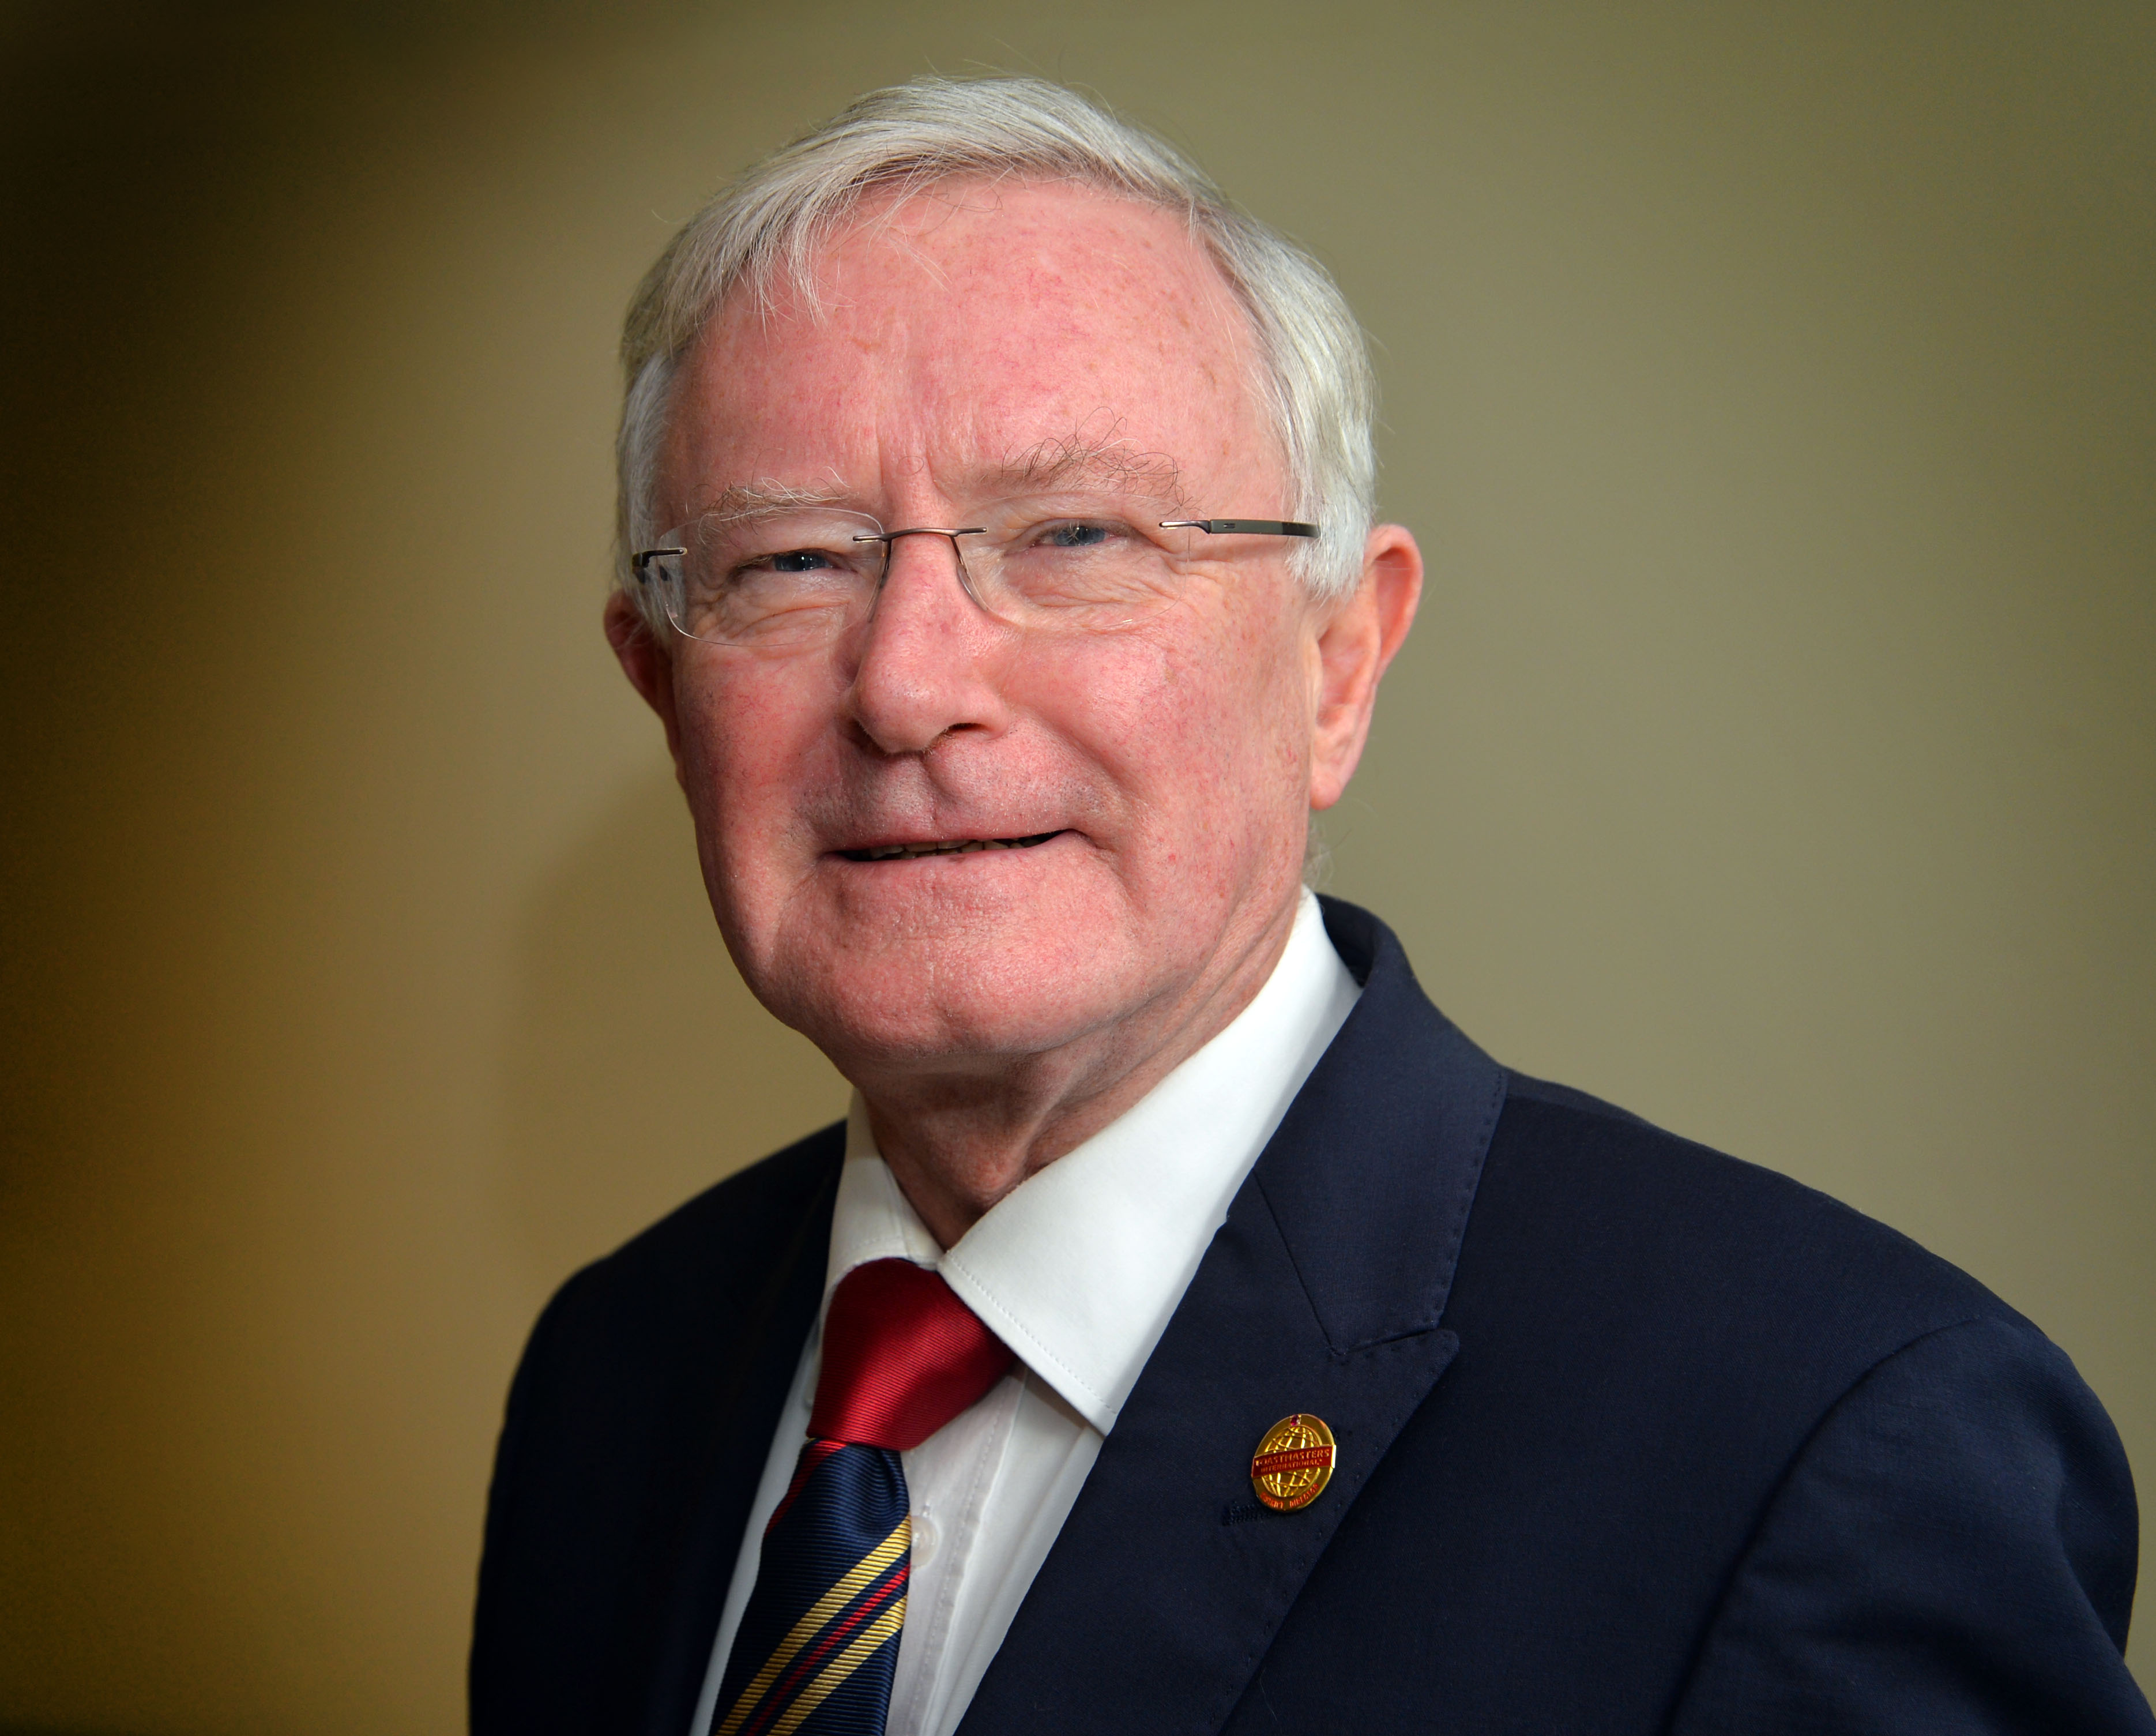 Toastmasters and Rotary join forces in Ireland to make a difference in the world